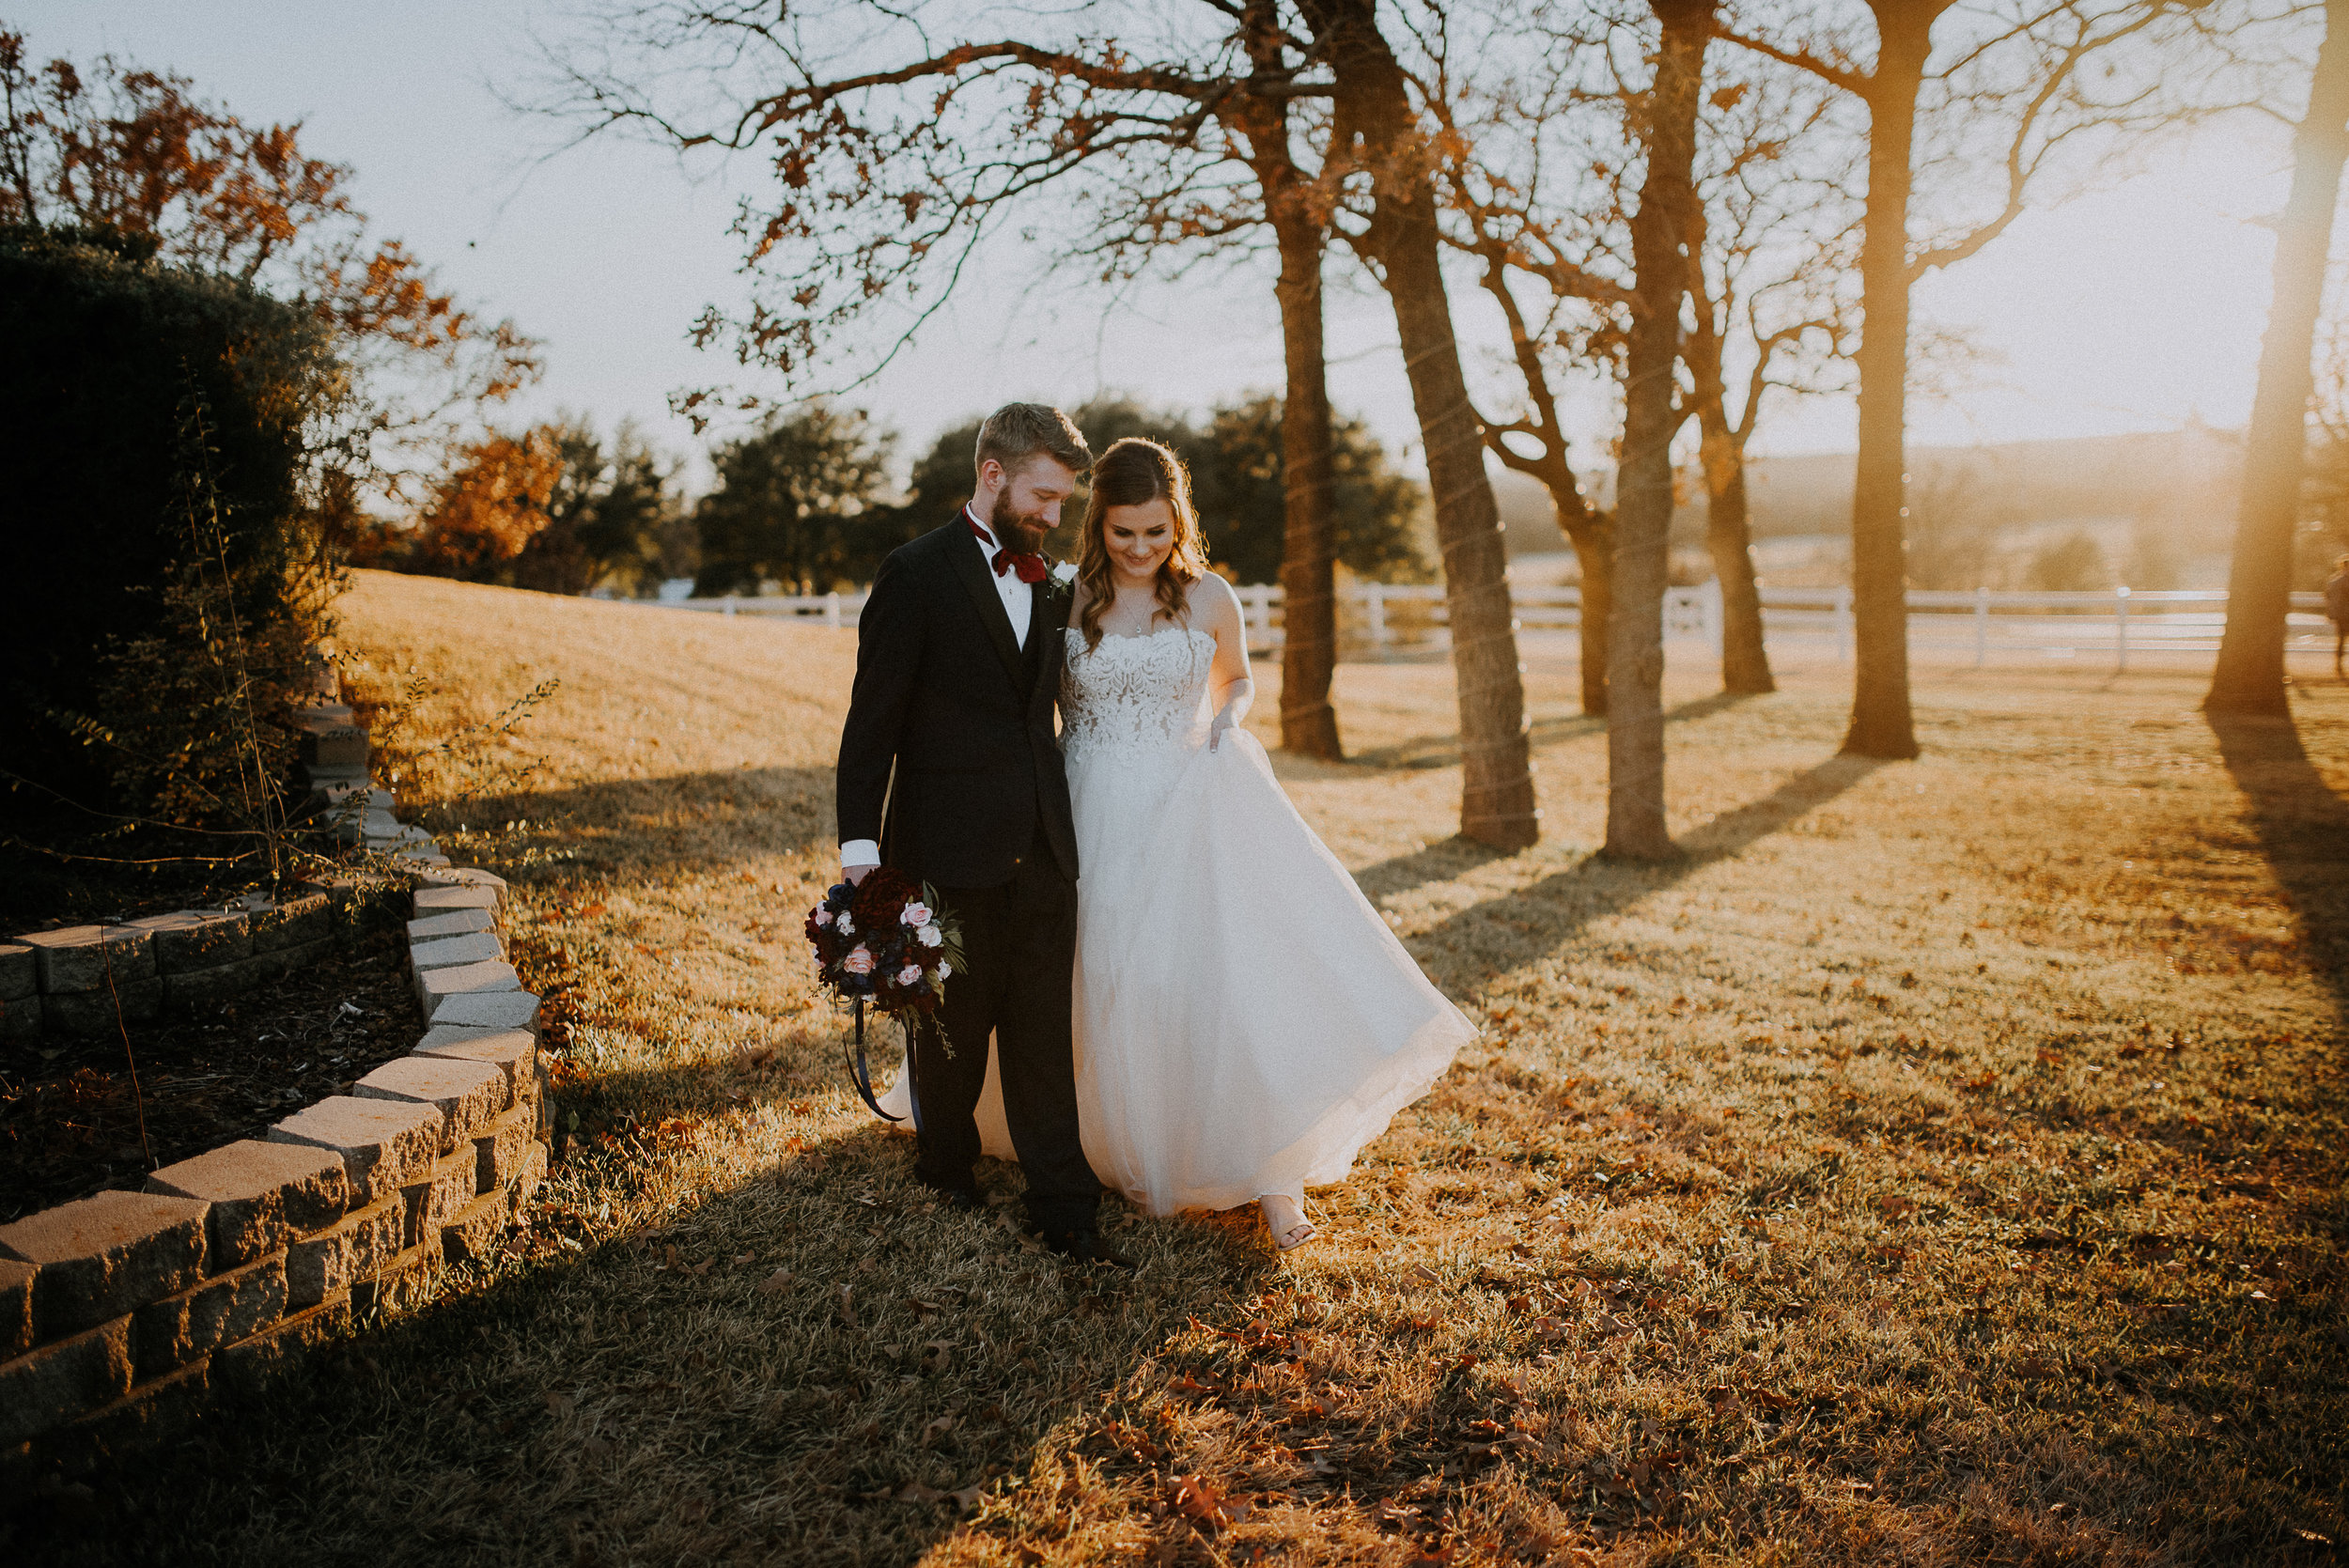 Dallas_Fort_Worth_wedding_Photographer_lone_star_mansion_burleson_texas_102